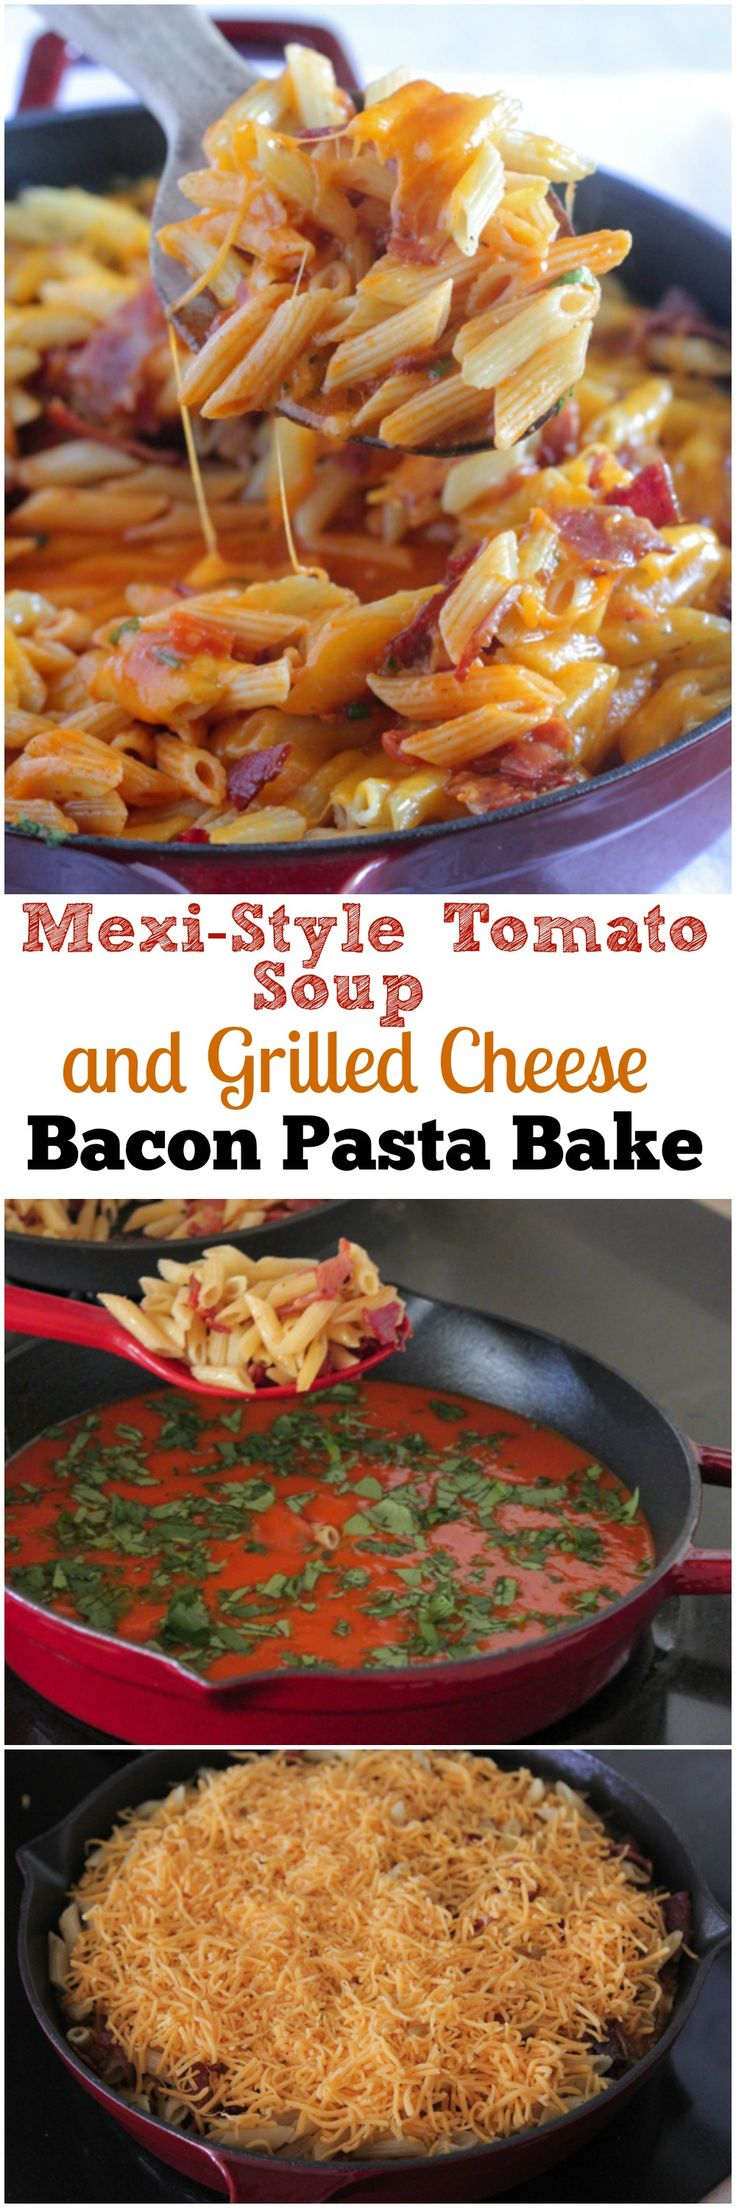 Mexi-Style Soup and Grilled Cheese Bacon Pasta Bake!  Simple amazing weeknight dinner idea, takes about 30 minutes to prepare!